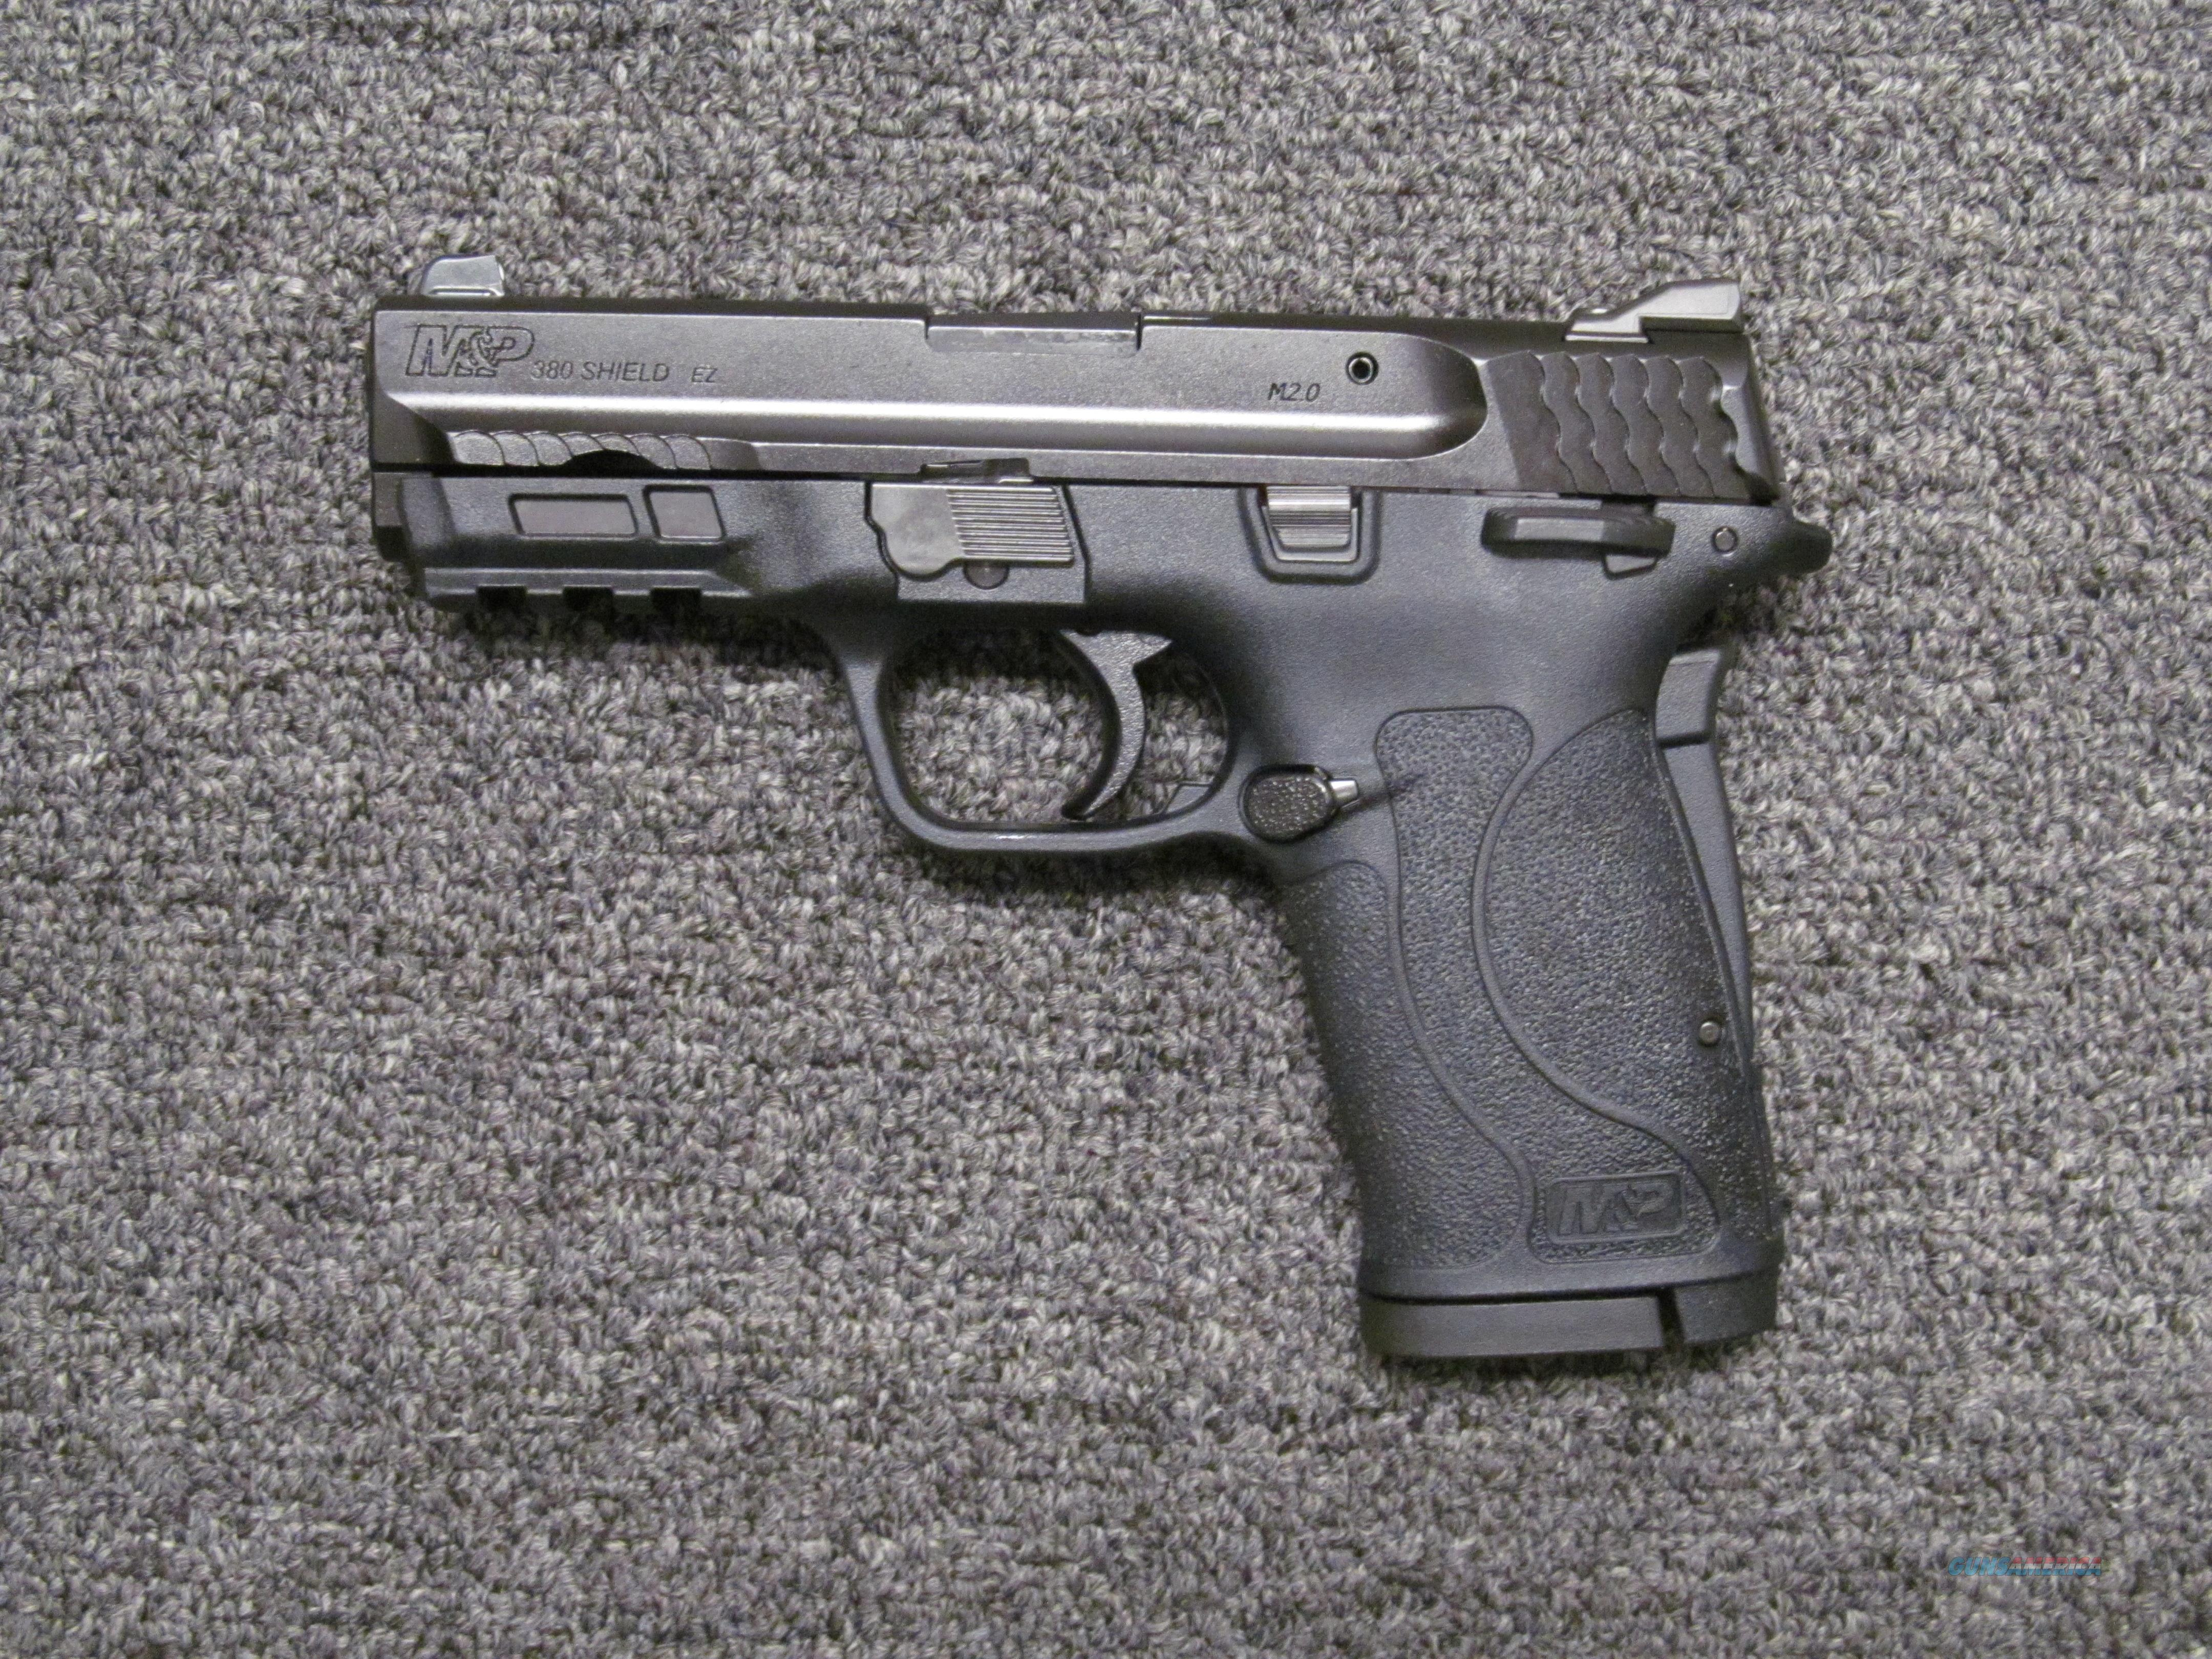 Smith & Wesson M&P Shield 380 EZ   Guns > Pistols > Smith & Wesson Pistols - Autos > Shield